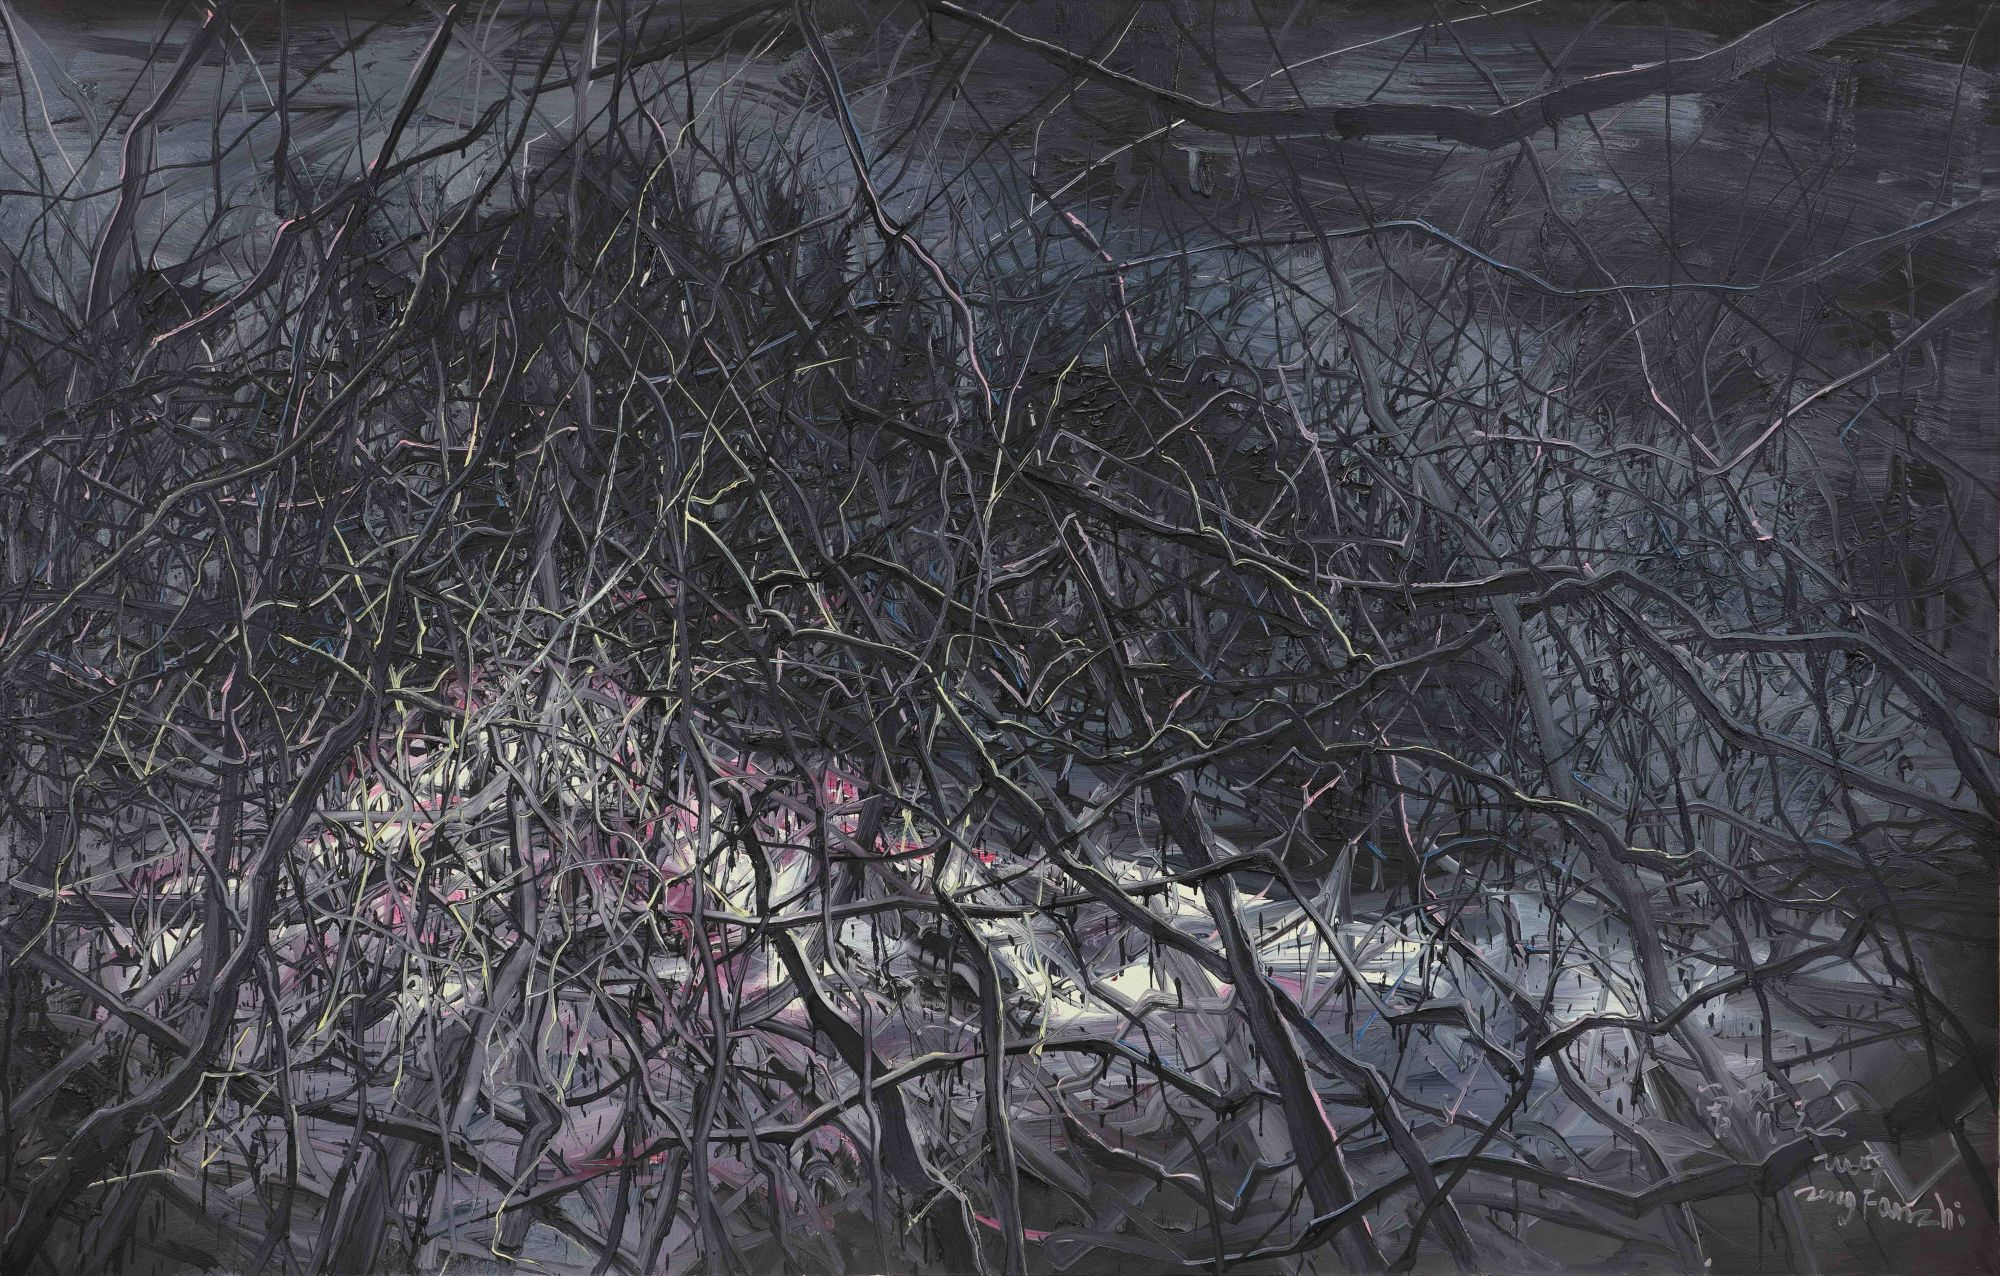 """Untitled"" by Zeng Fanzhi, one of the most famous Chinese contemporary artists, is valued at HK$8million—12 million."